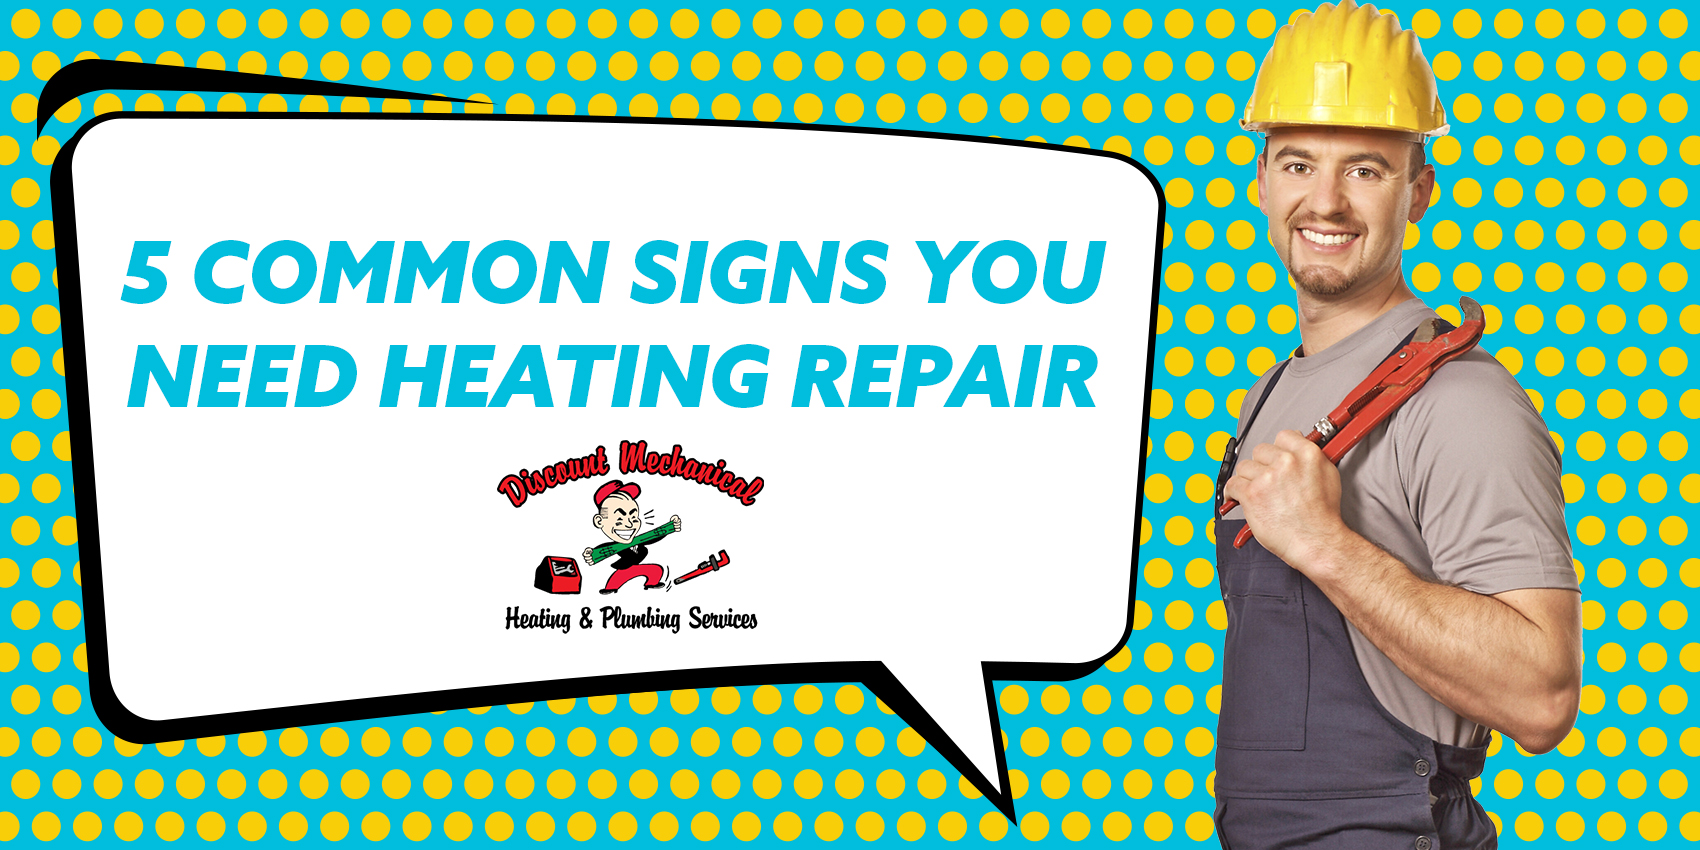 5 Common Signs You Need Heating Repair